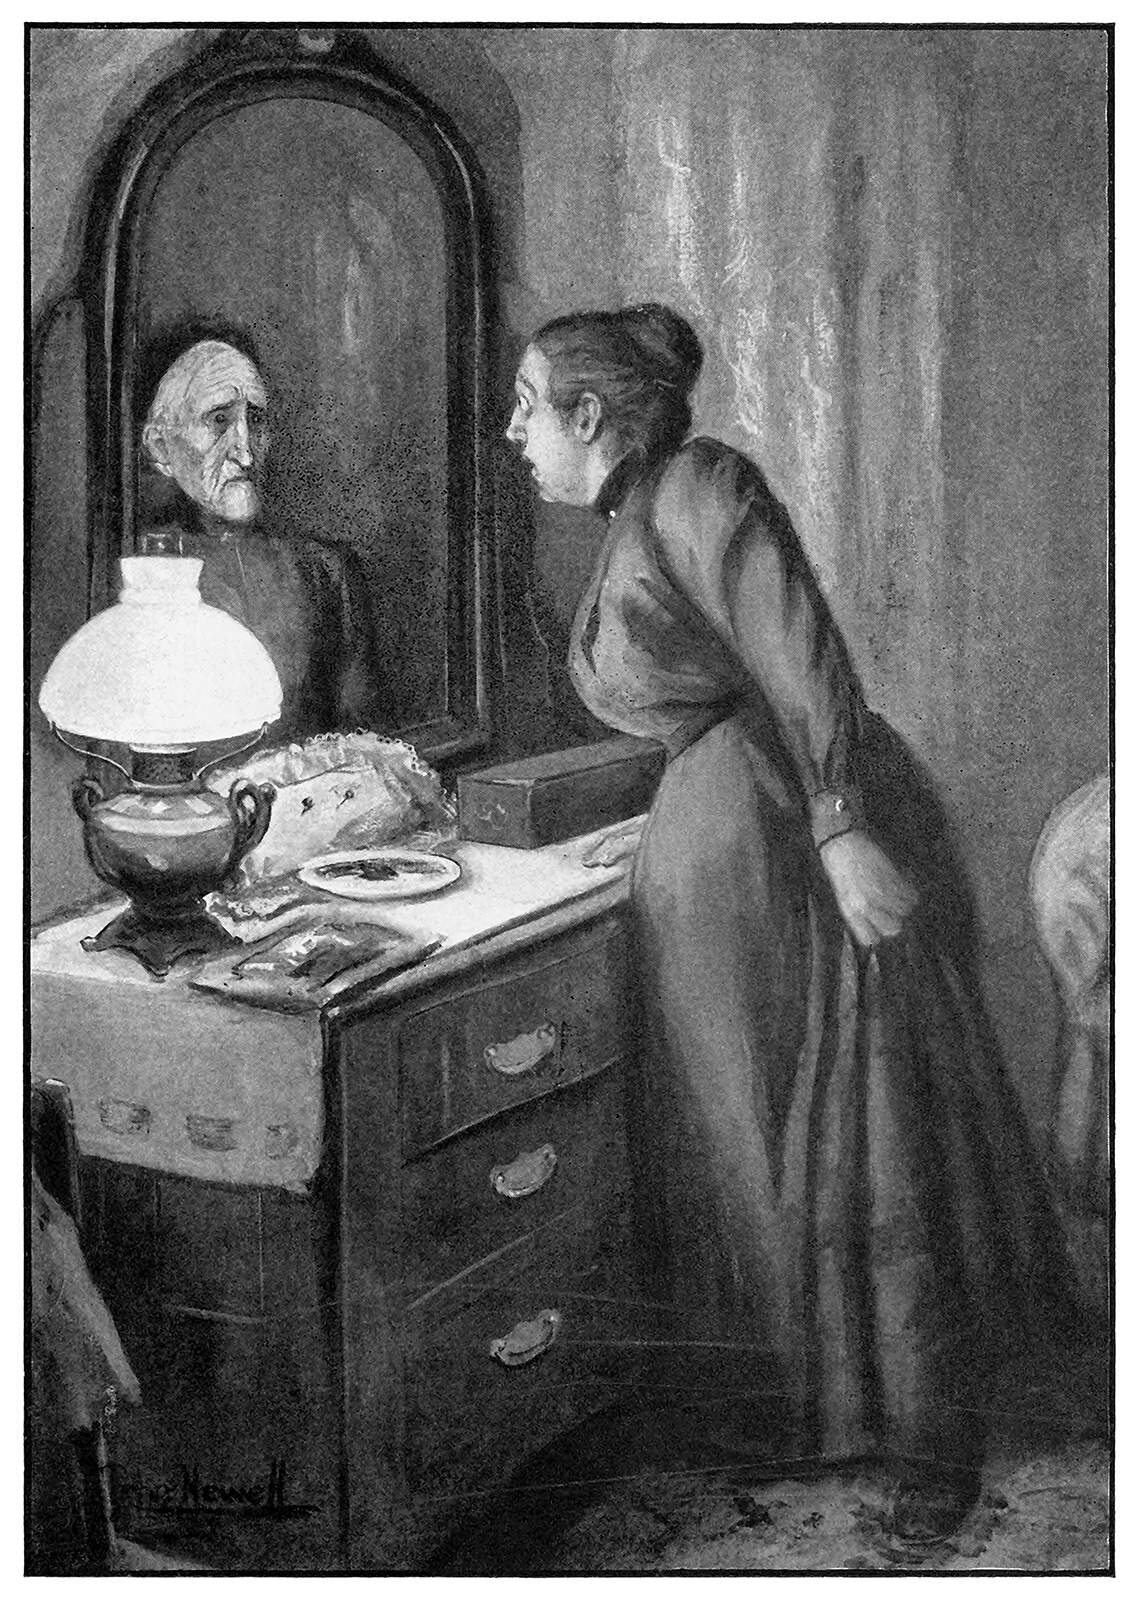 A woman looks into a mirror to see a ghostly face look back